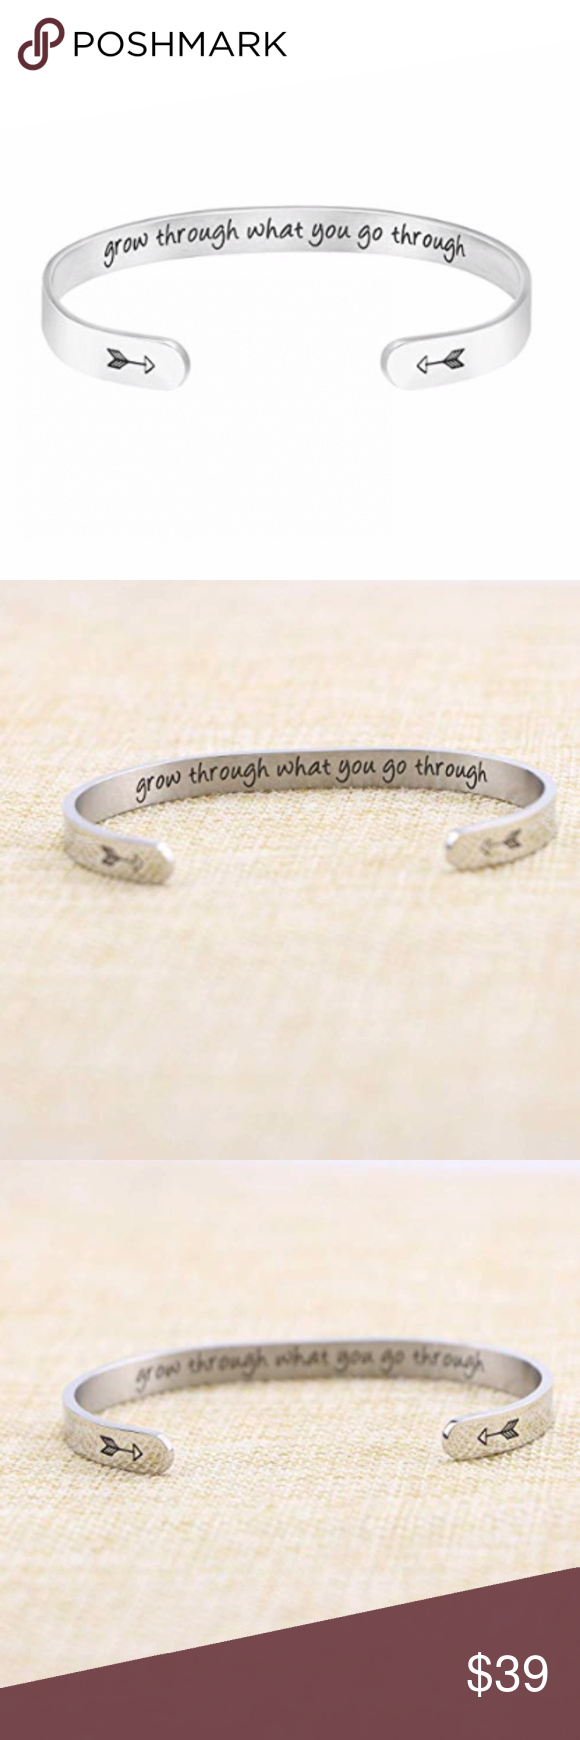 et Comes with elegant gift box Inspirational gifts for your friend sister mot